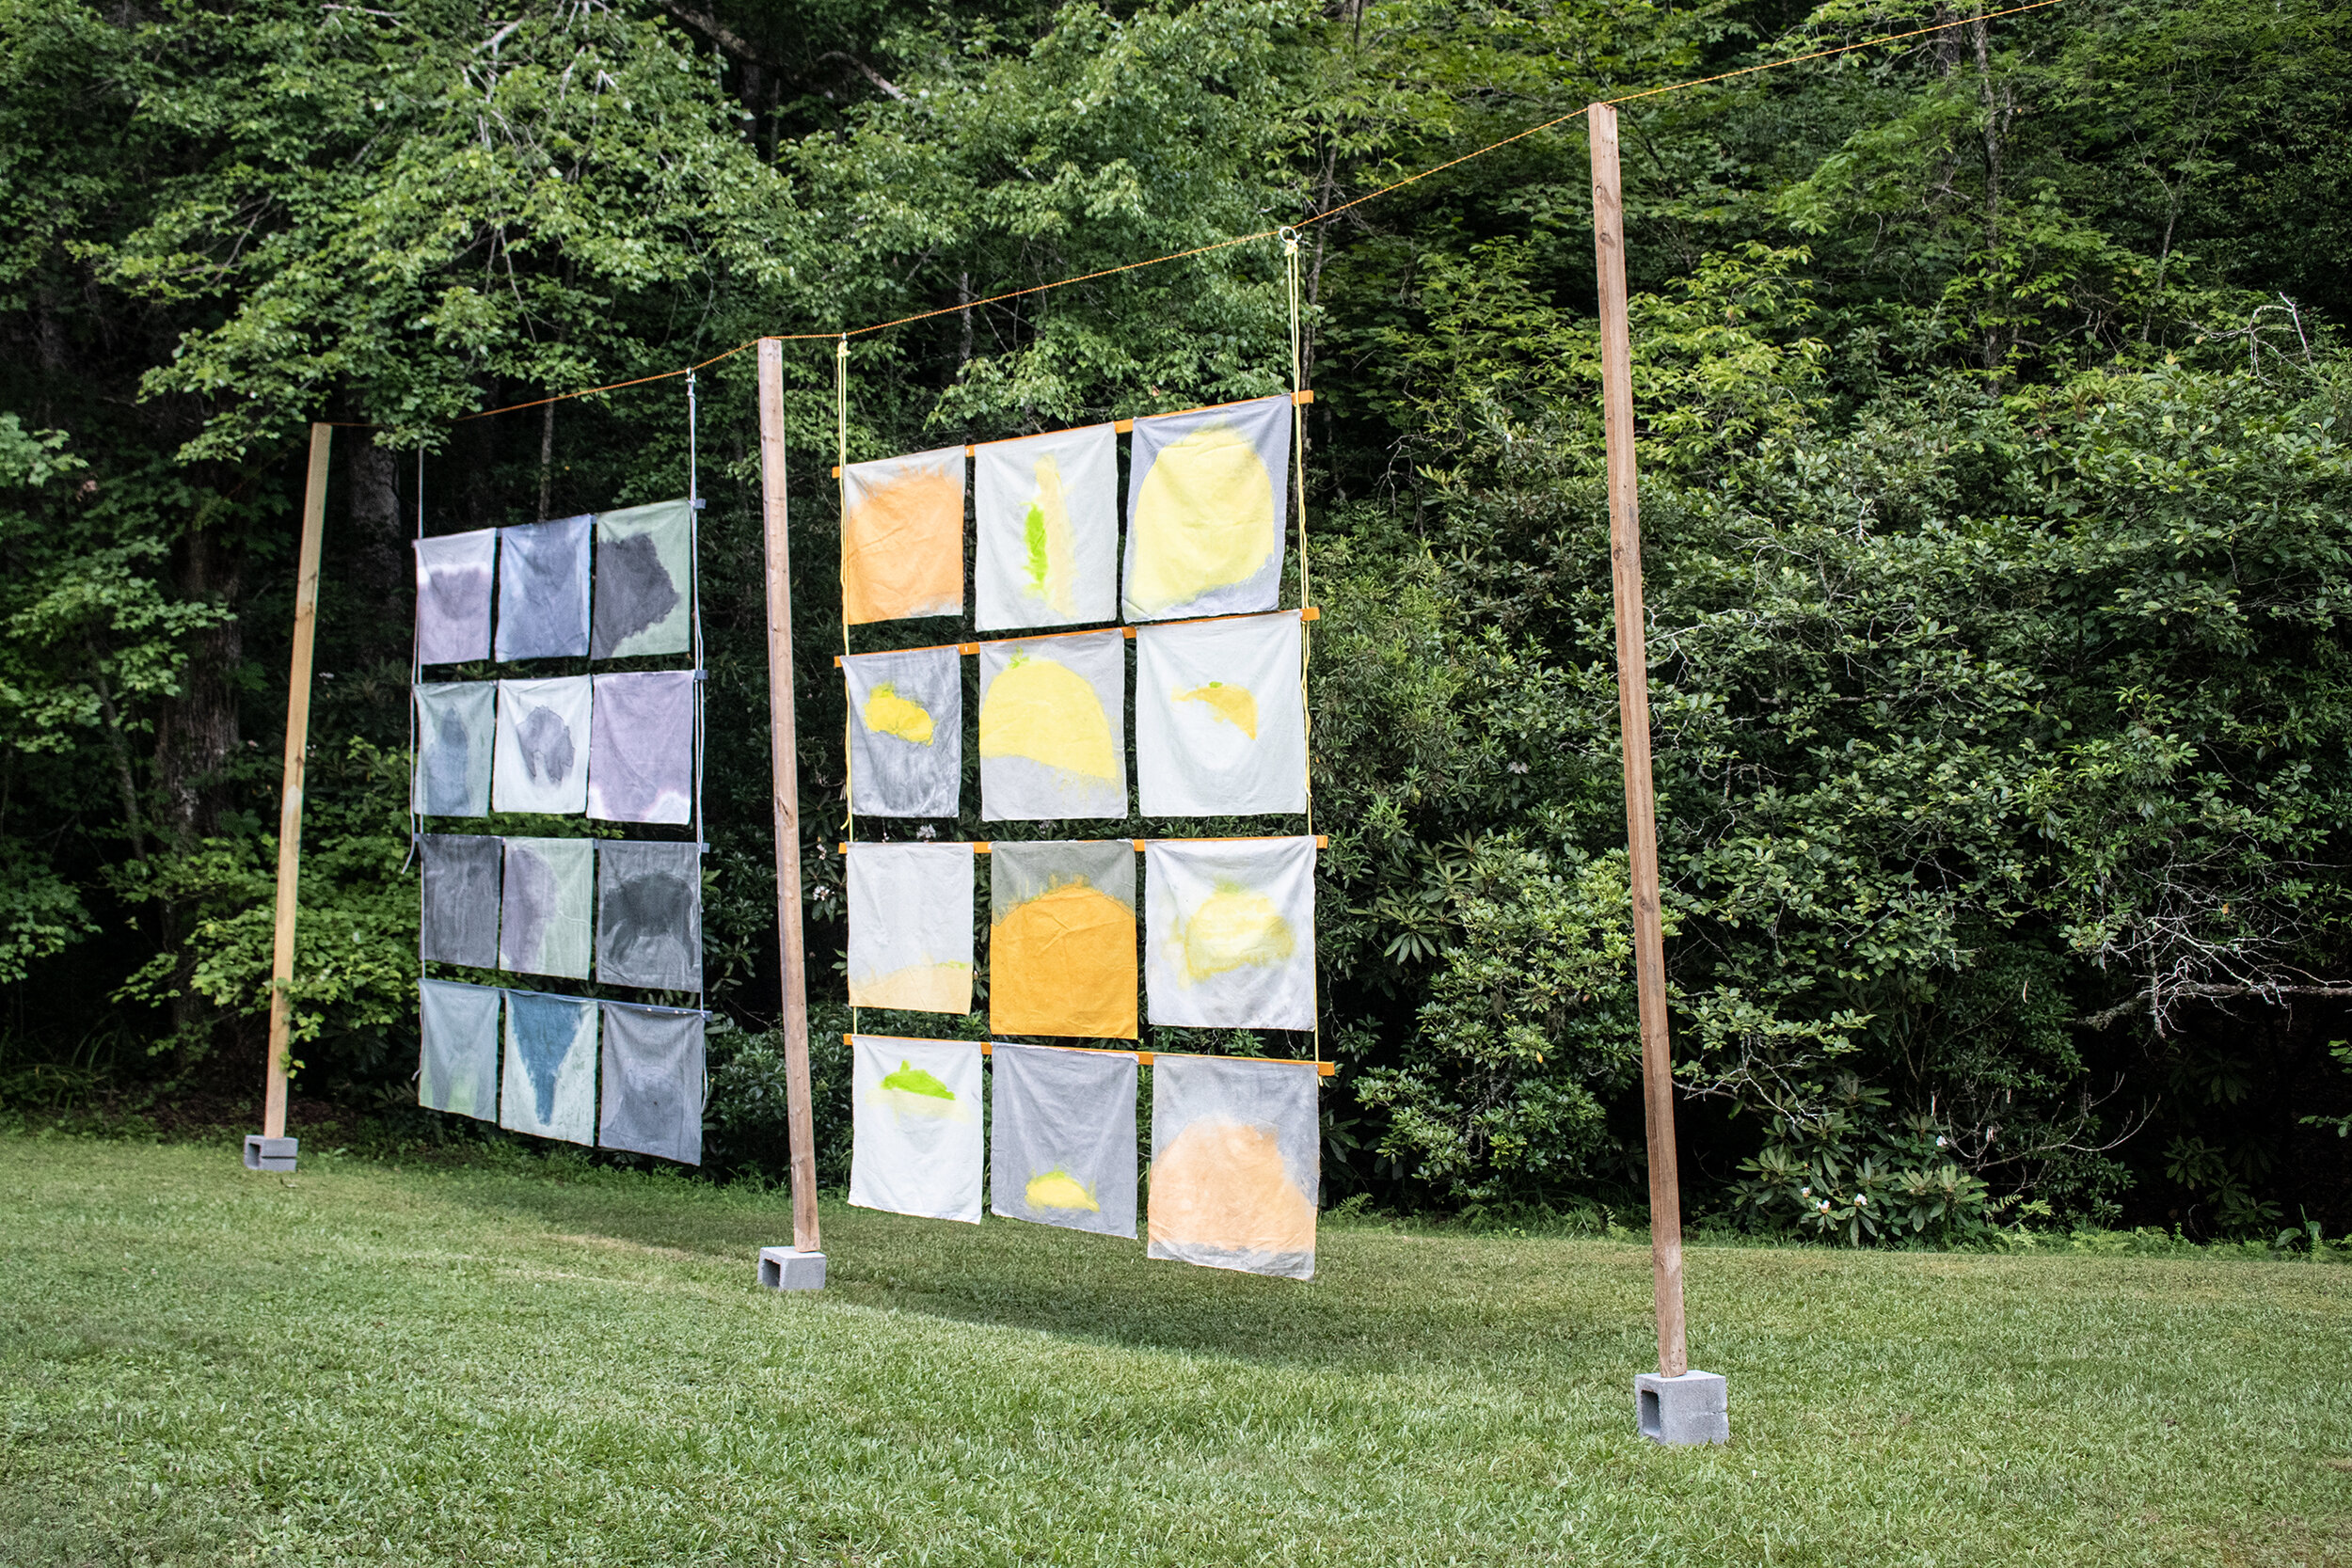 Song of Amergin (Floating with support, outdoors), Installation at the Hambidge Center for the Arts, Rabun Gap, GA